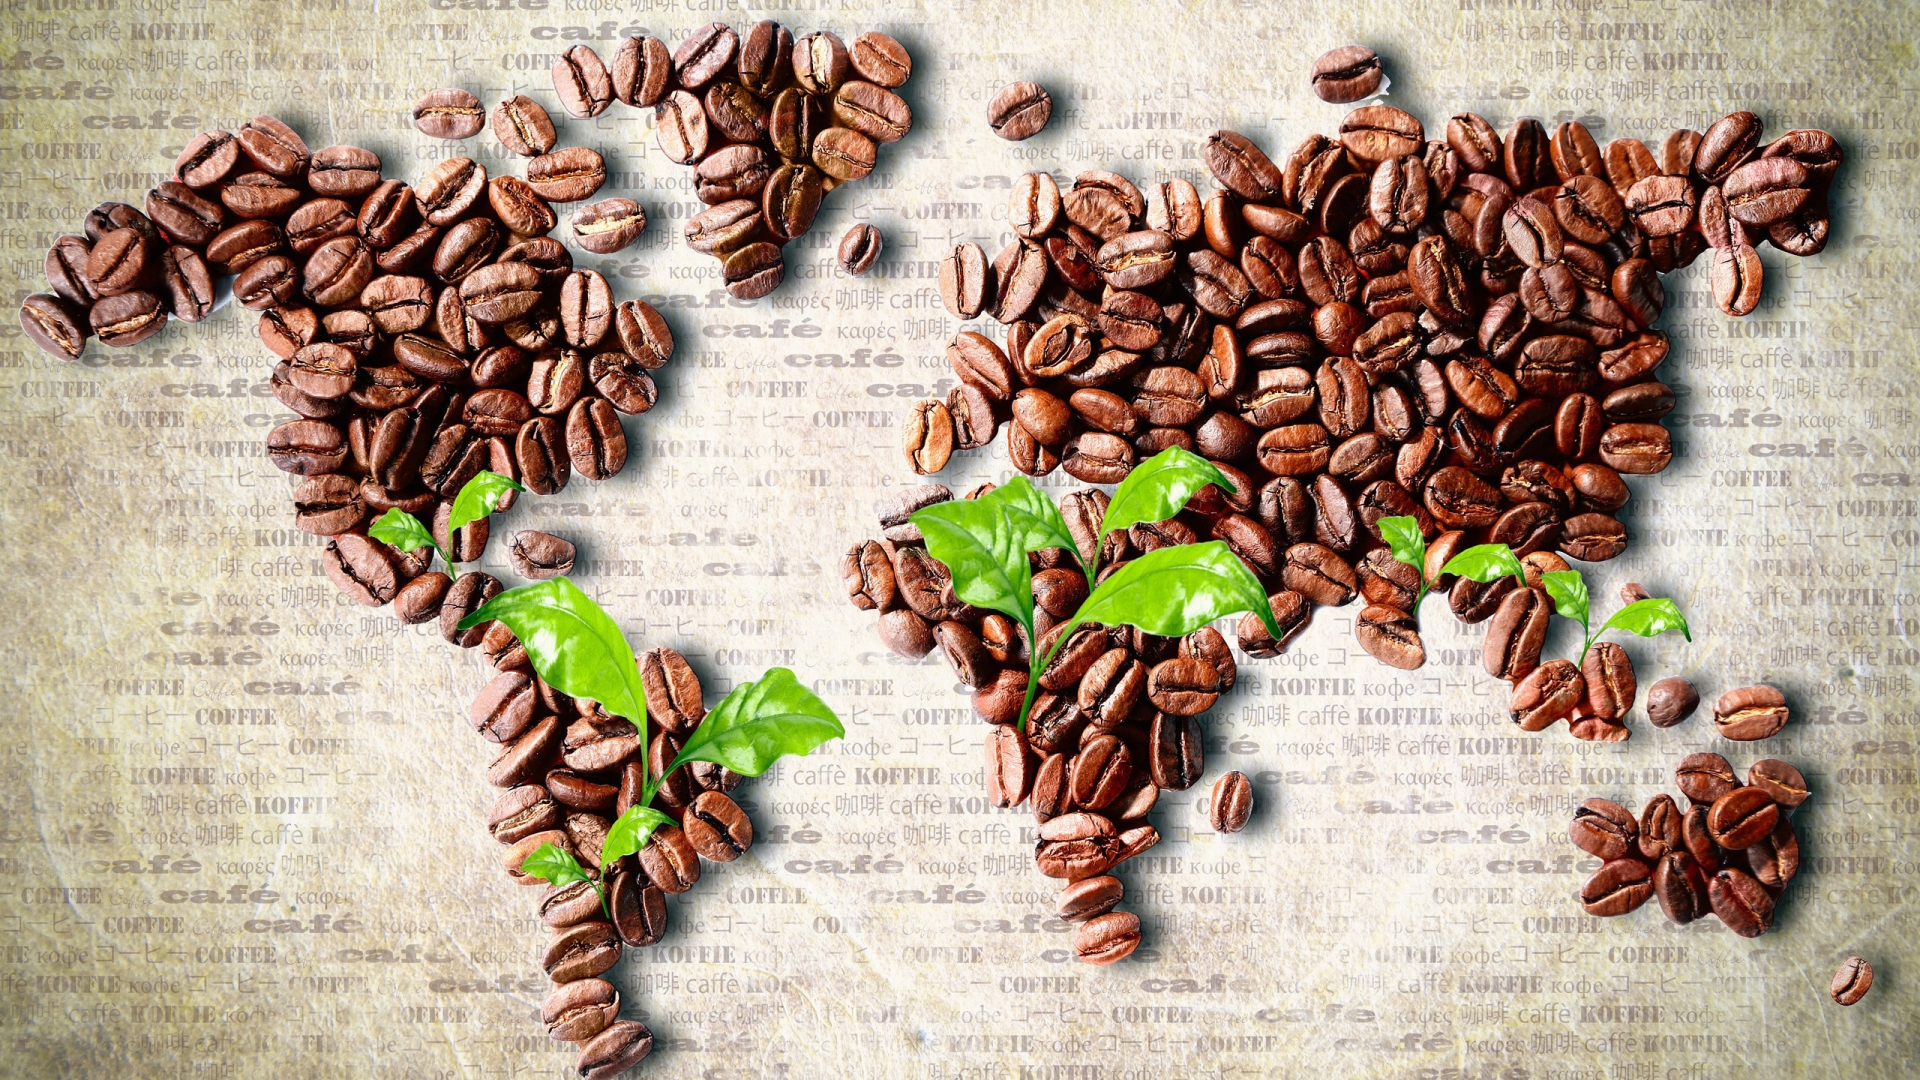 Coffee Beans World Map for 1920 x 1080 HDTV 1080p resolution